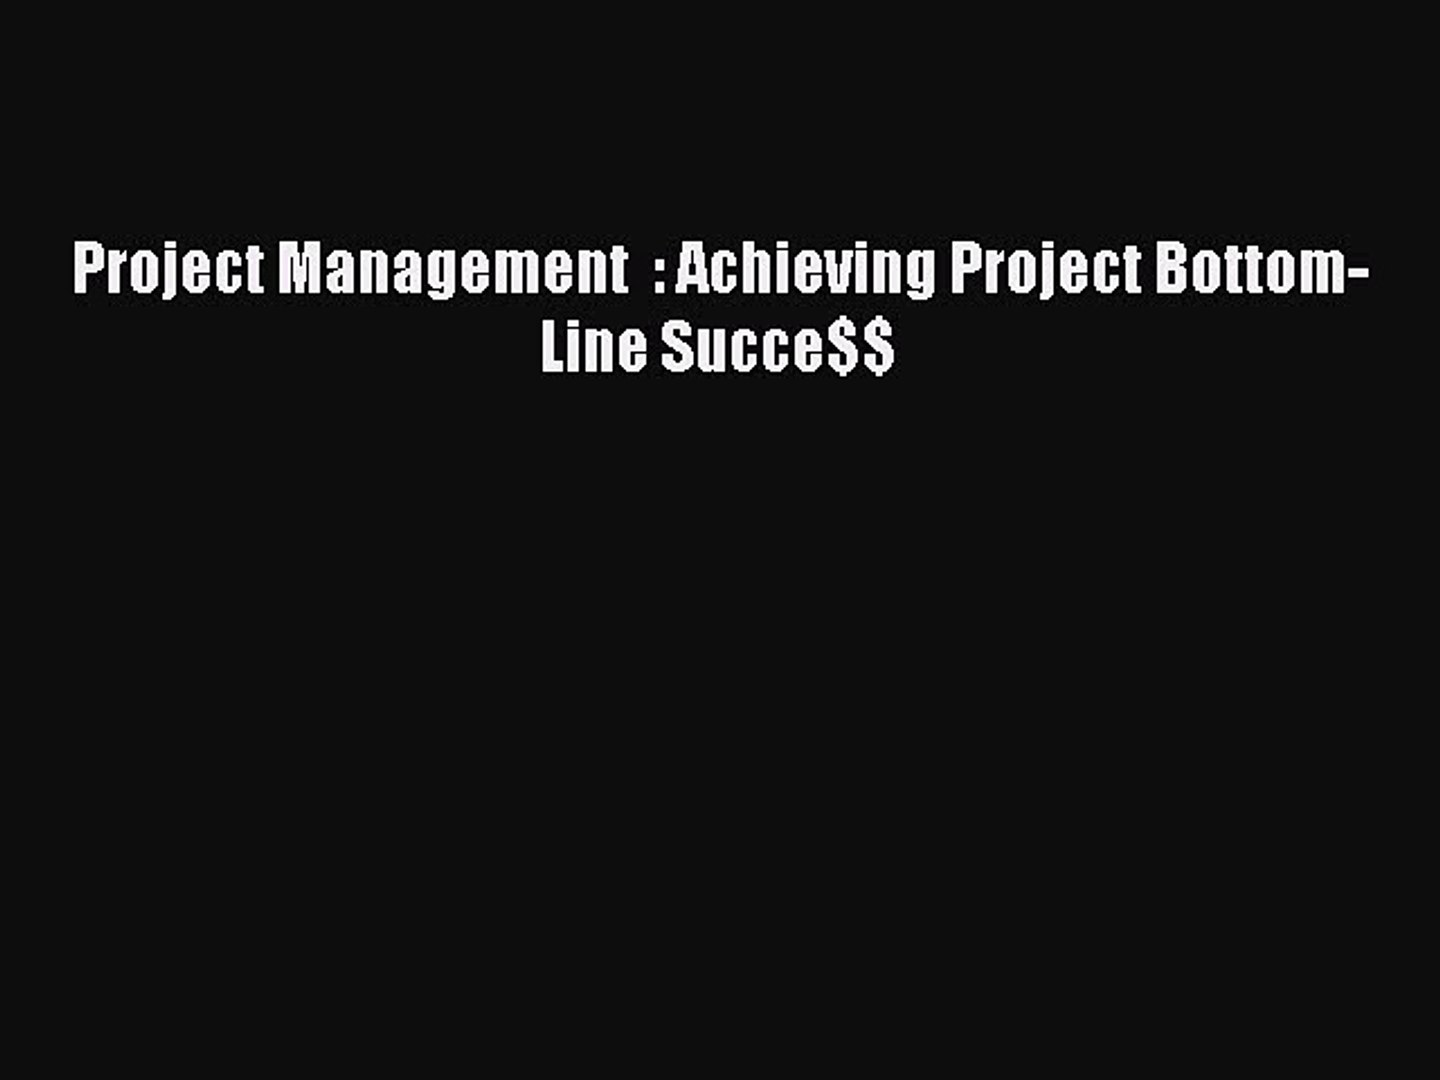 Download Project Management  : Achieving Project Bottom-Line Succe$$ Ebook Online